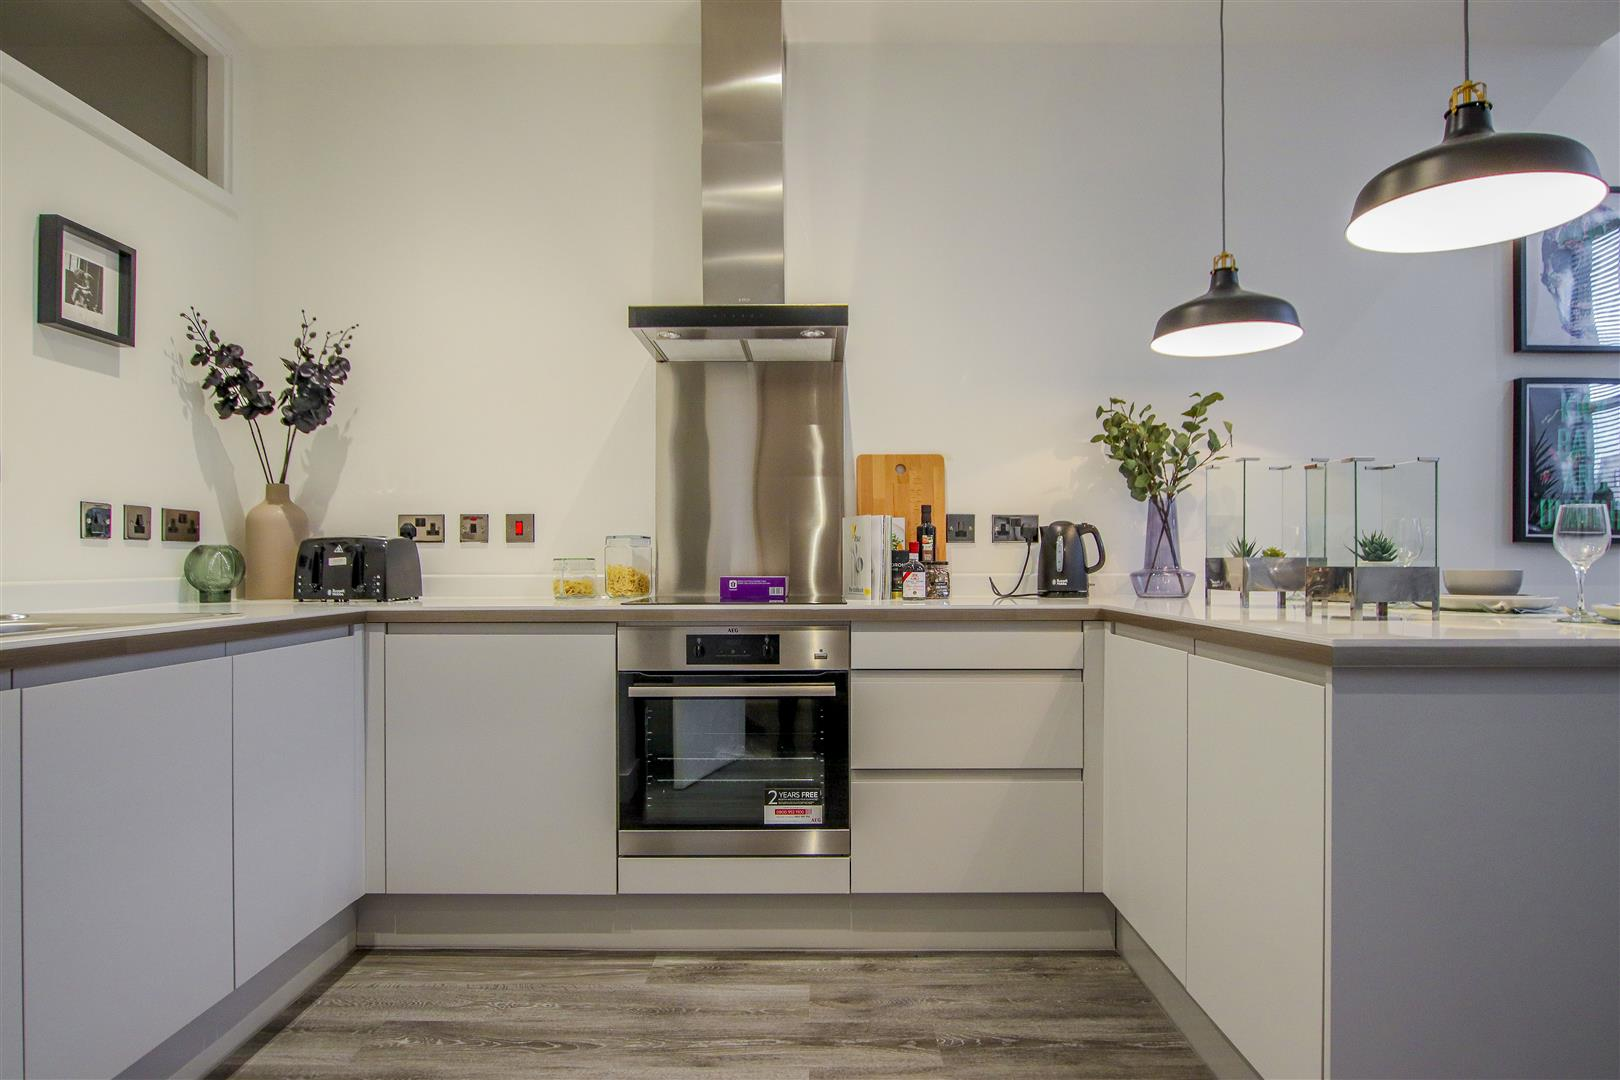 2 Bedroom Apartment For Sale - 39.JPG